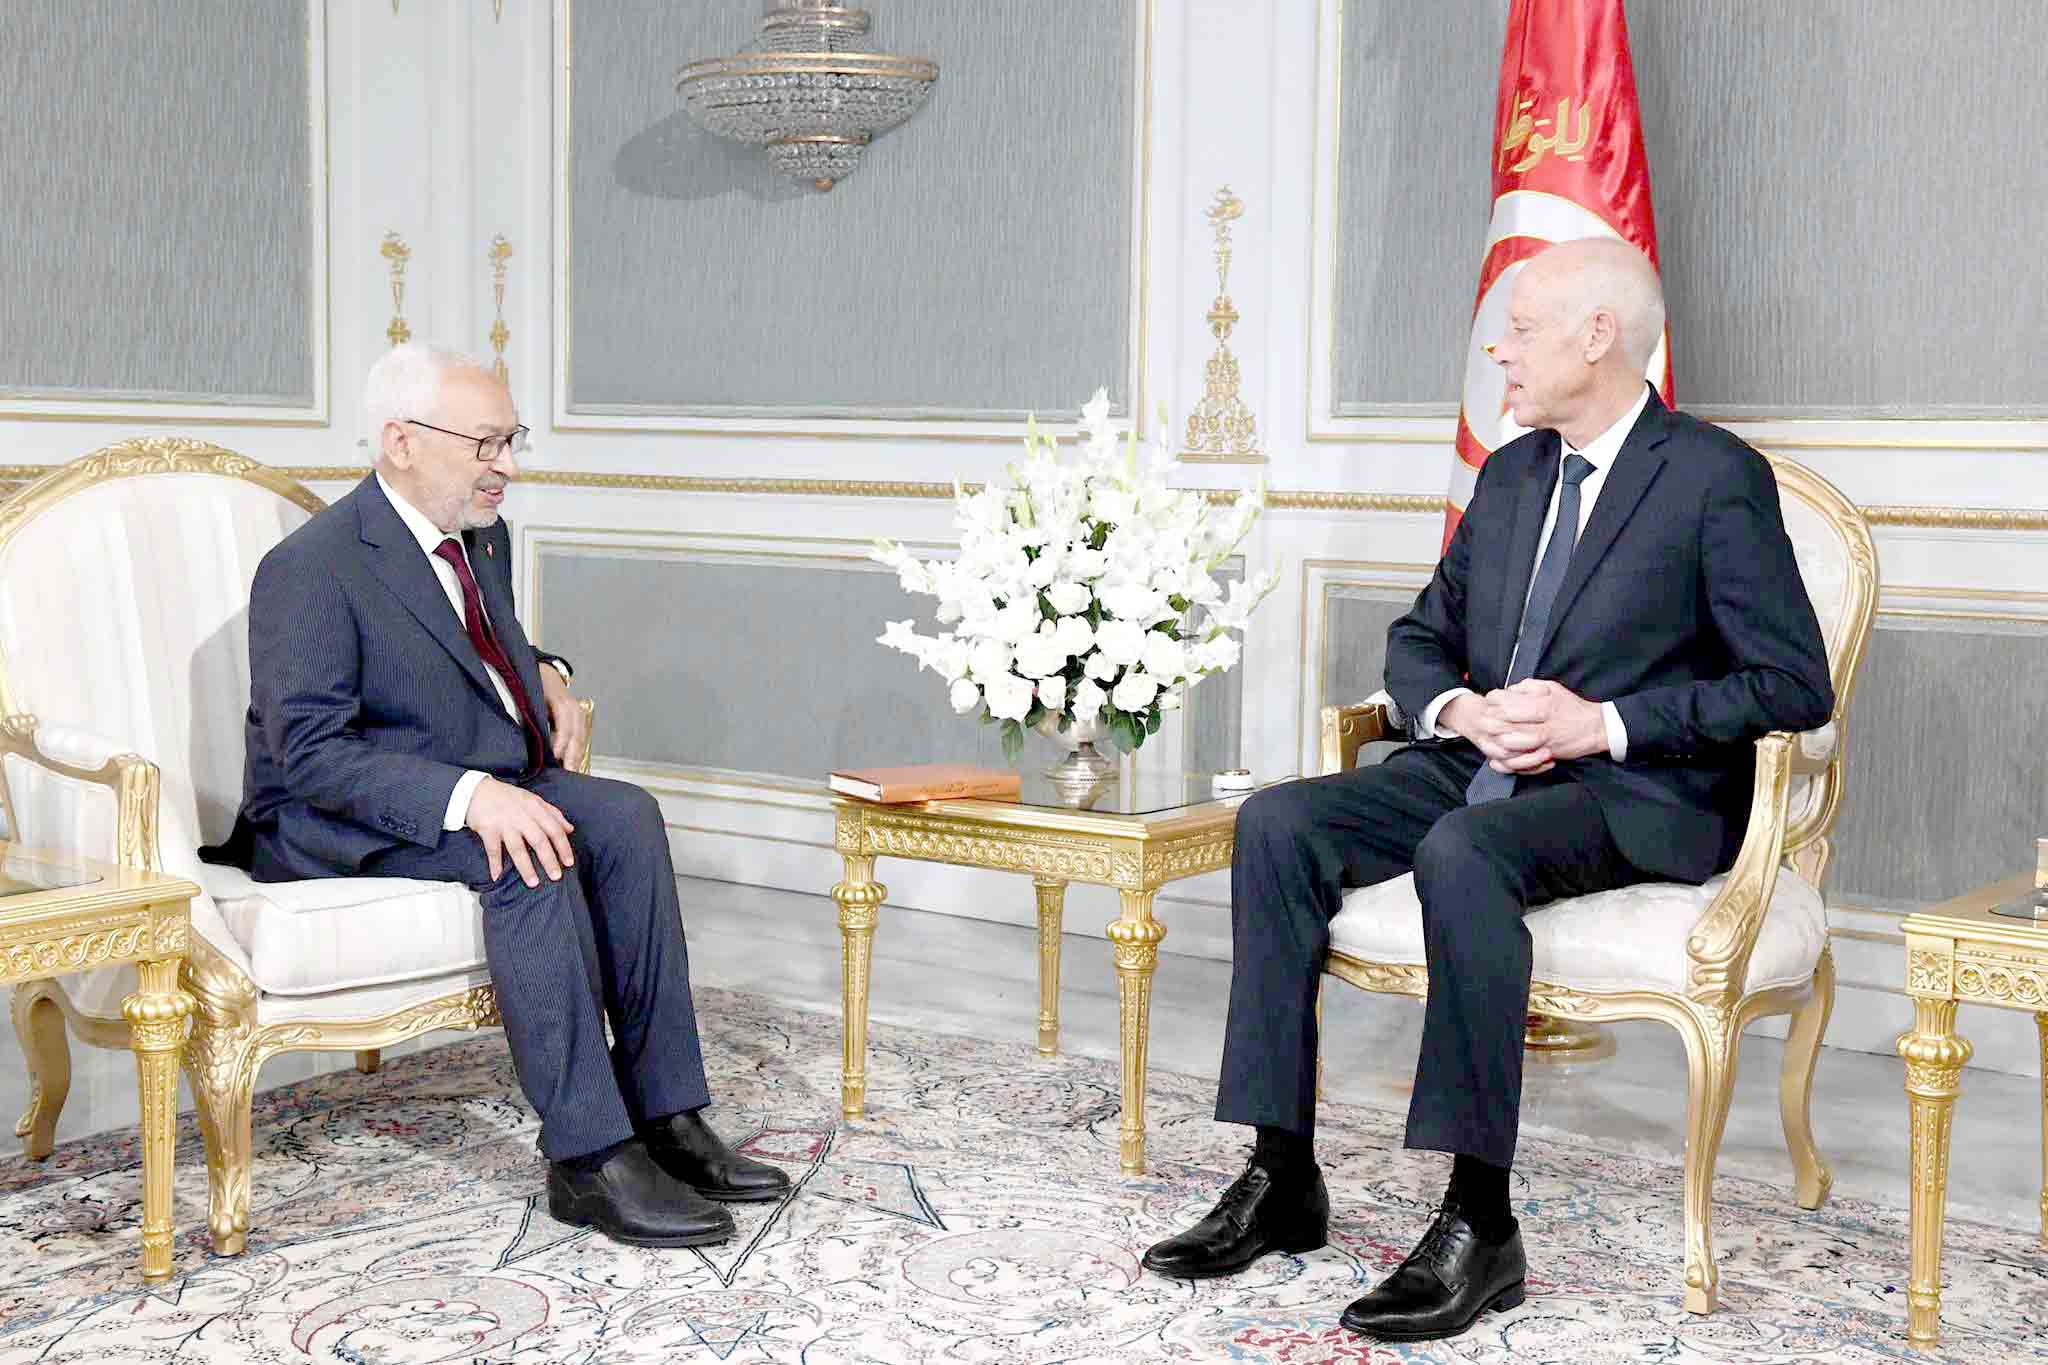 Tunisian President Kais Saied (R) meets with Rached Ghannouchi, head of the Ennahda Movement at the Carthage Palace, last October. (DPA)